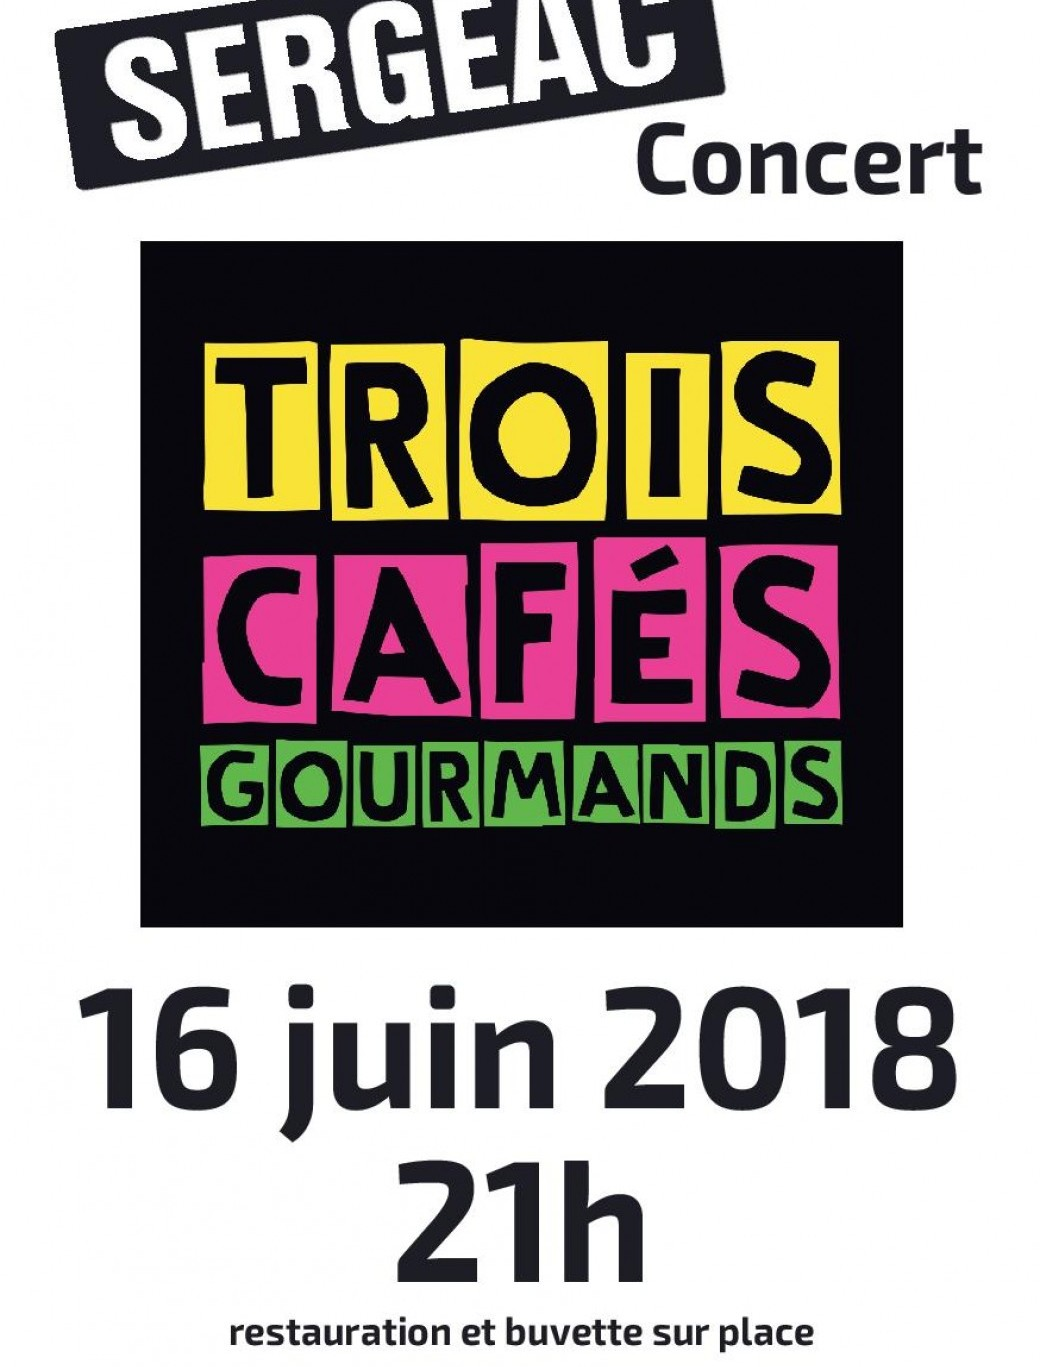 3 CAFÉS GOURMANDS